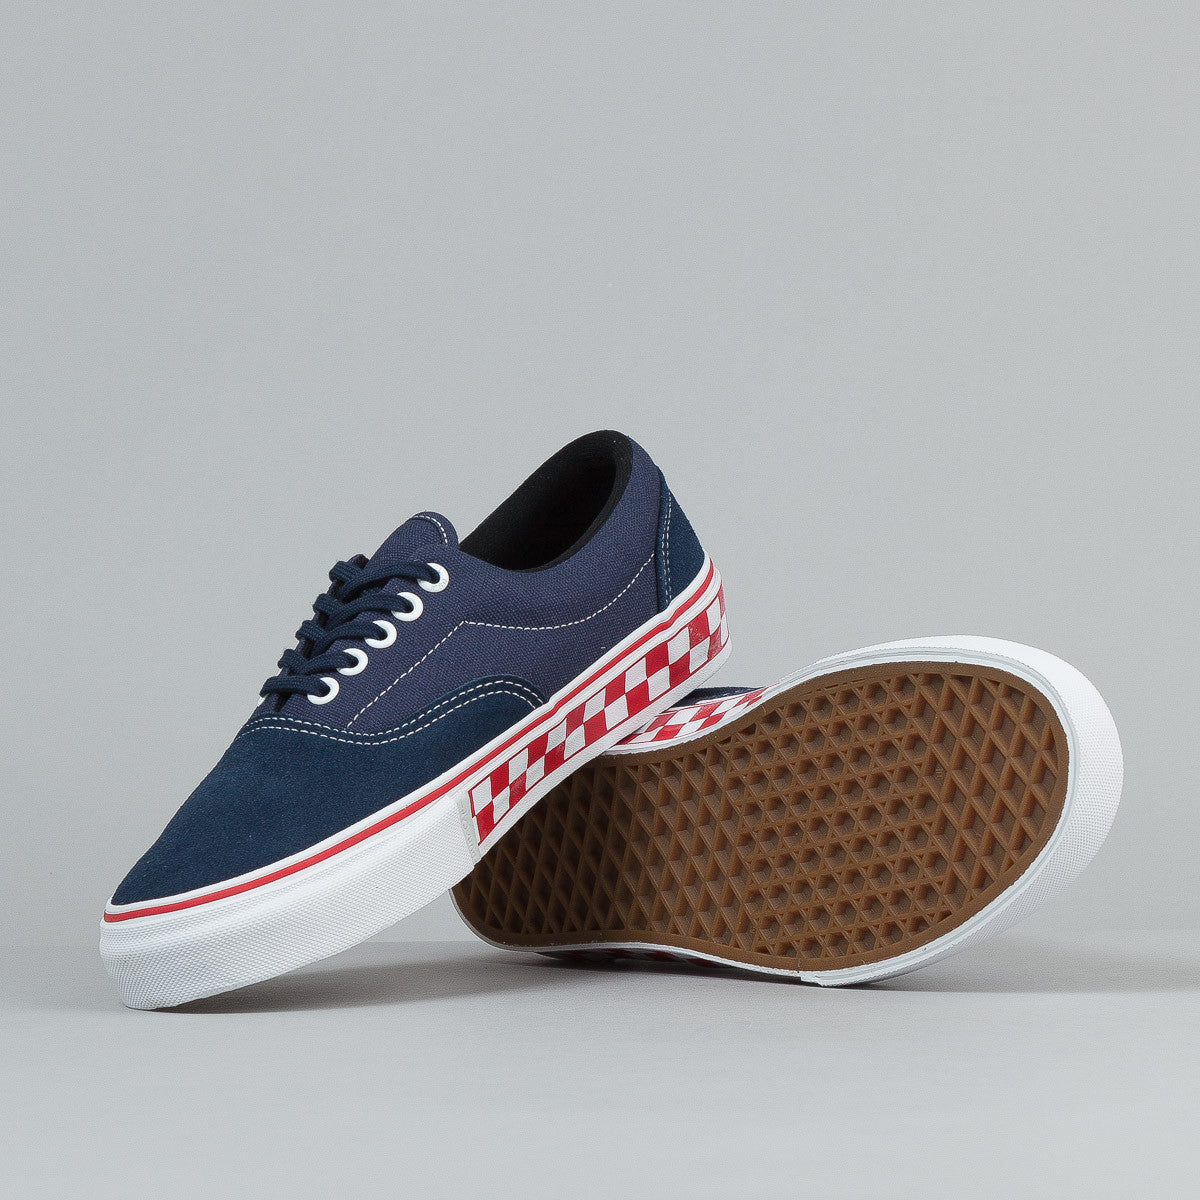 Vans Era Pro Shoes (Foxing Checkers) - Navy / Red